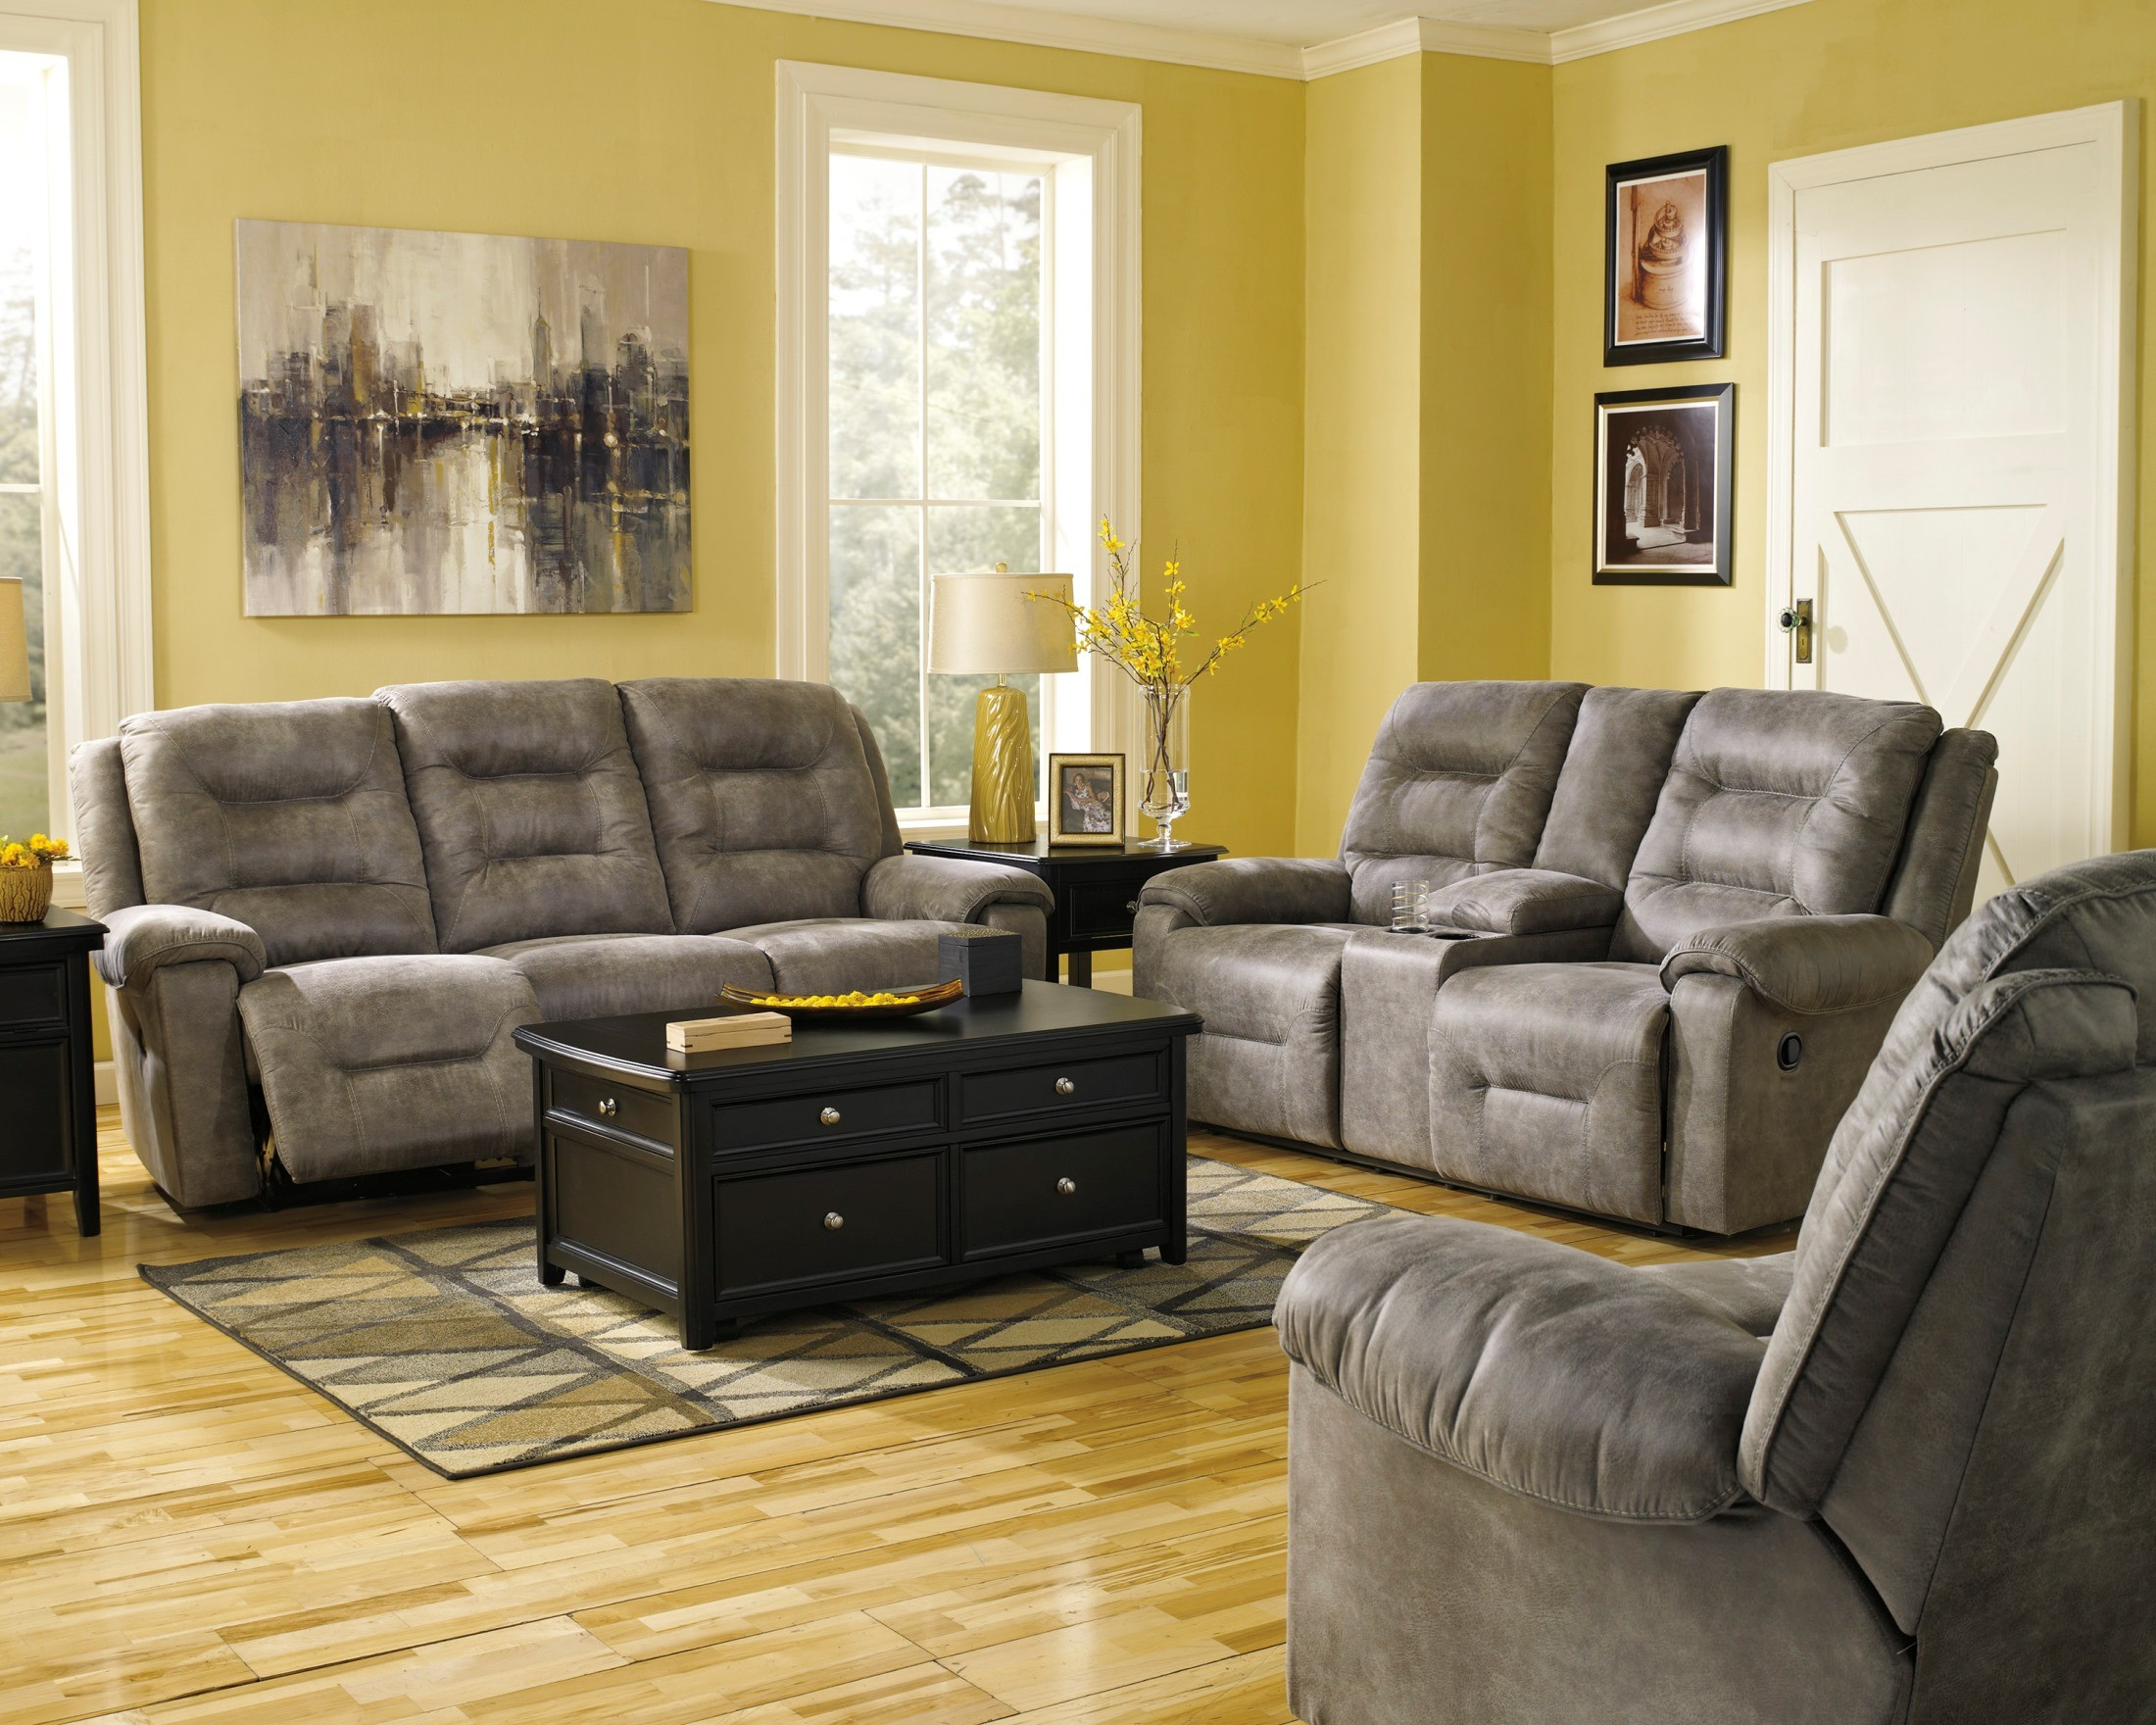 ashley living room design online rotation smoke reclining set from 97501 88 94 445517